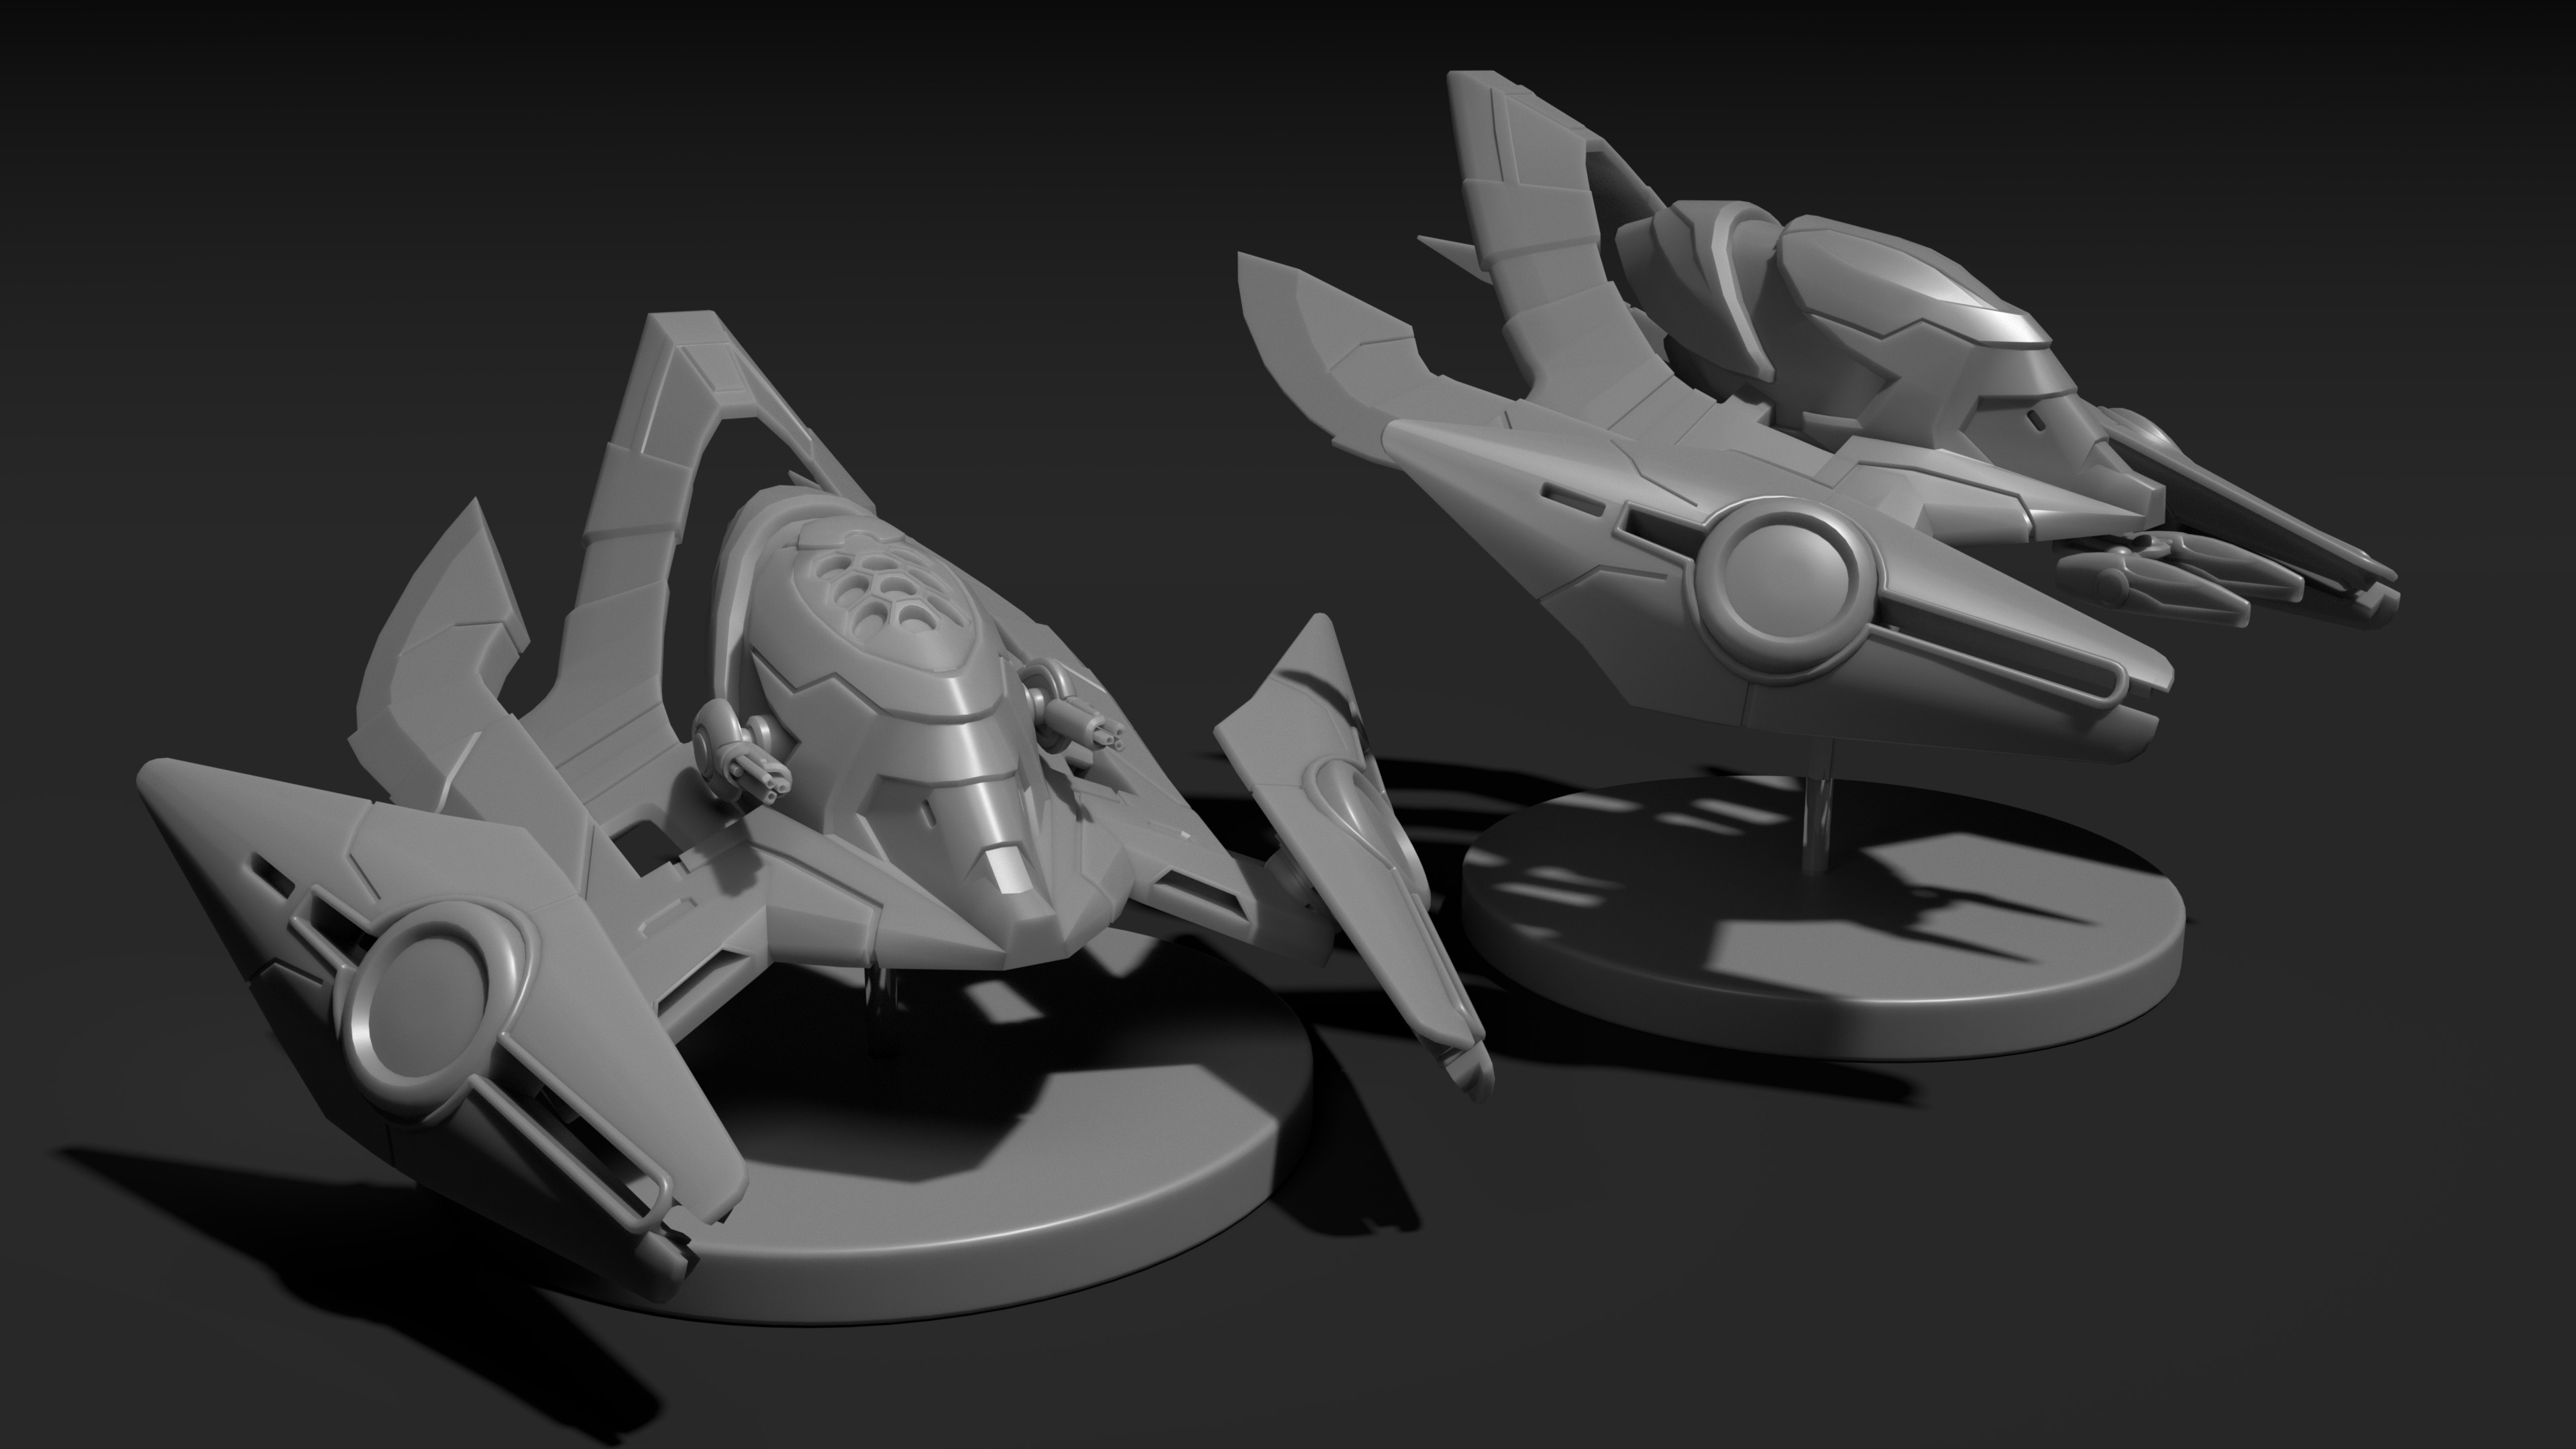 Venator Hull (Left) & Shikari Hull (Right)